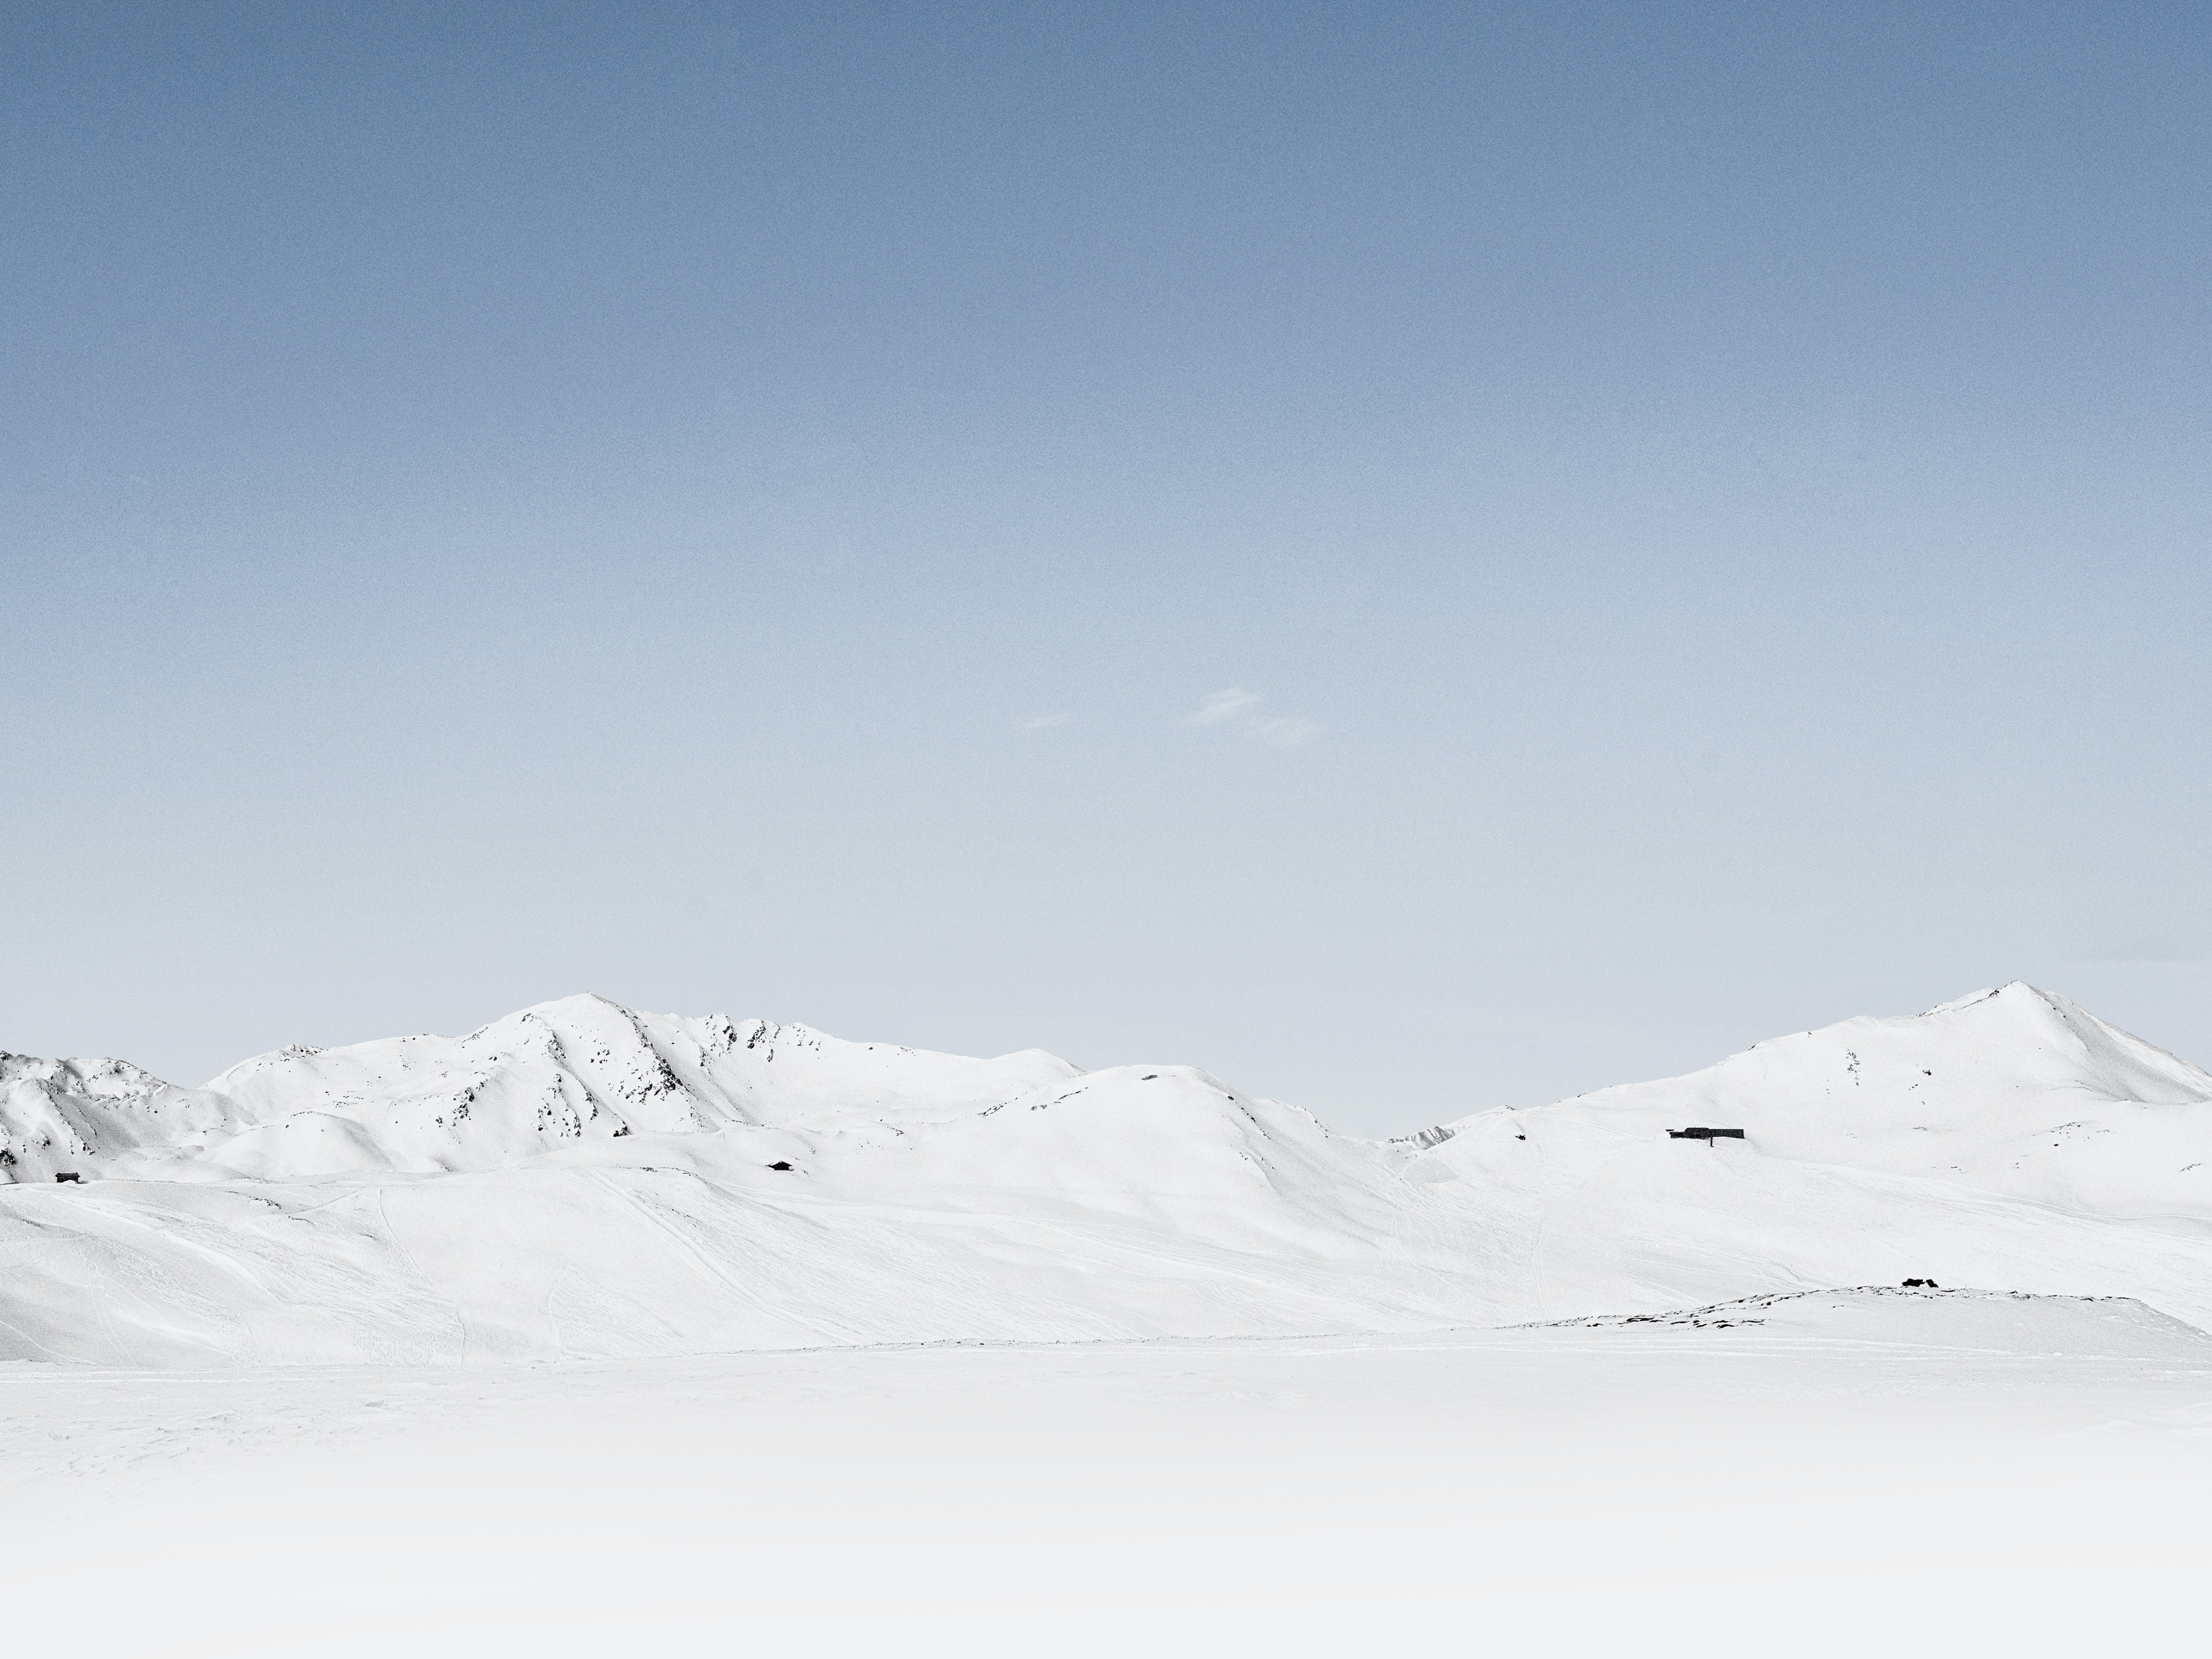 A mountain ridge under a snow blanket on a cloudless day